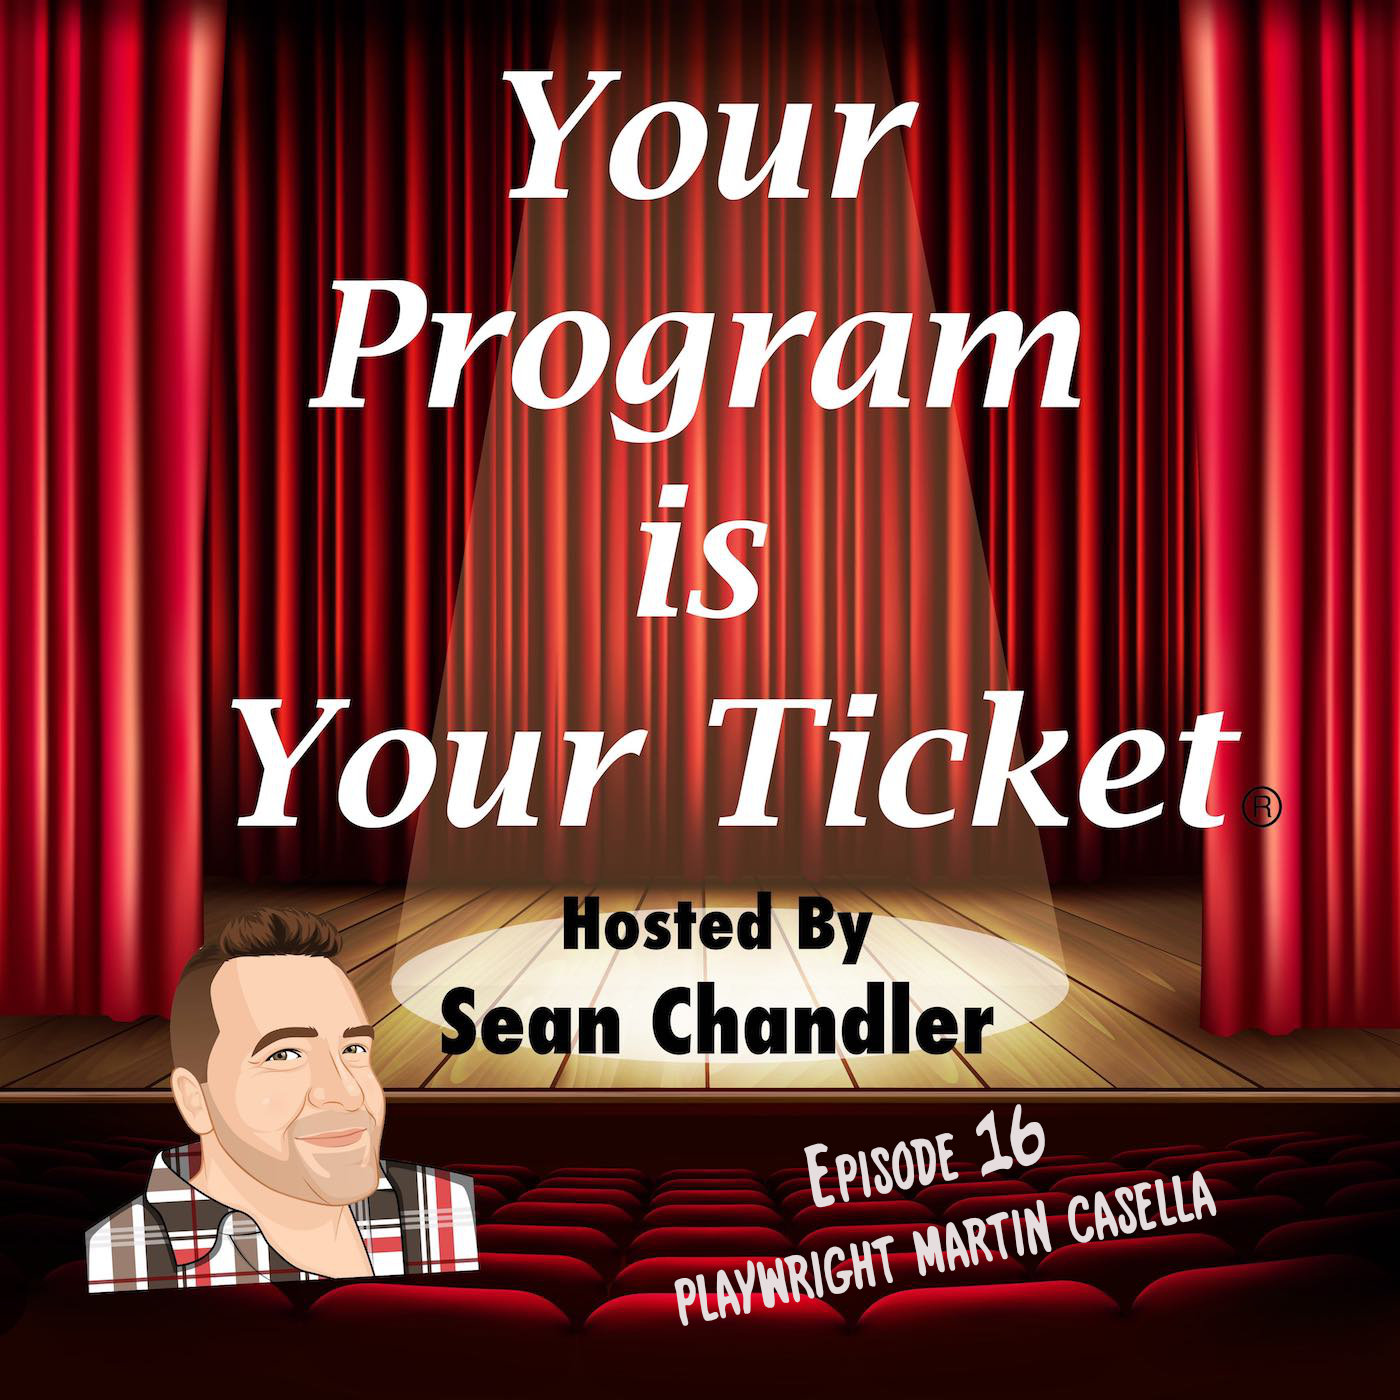 Ep 16 Your Program Is Your Ticket Logo Registered Trademark